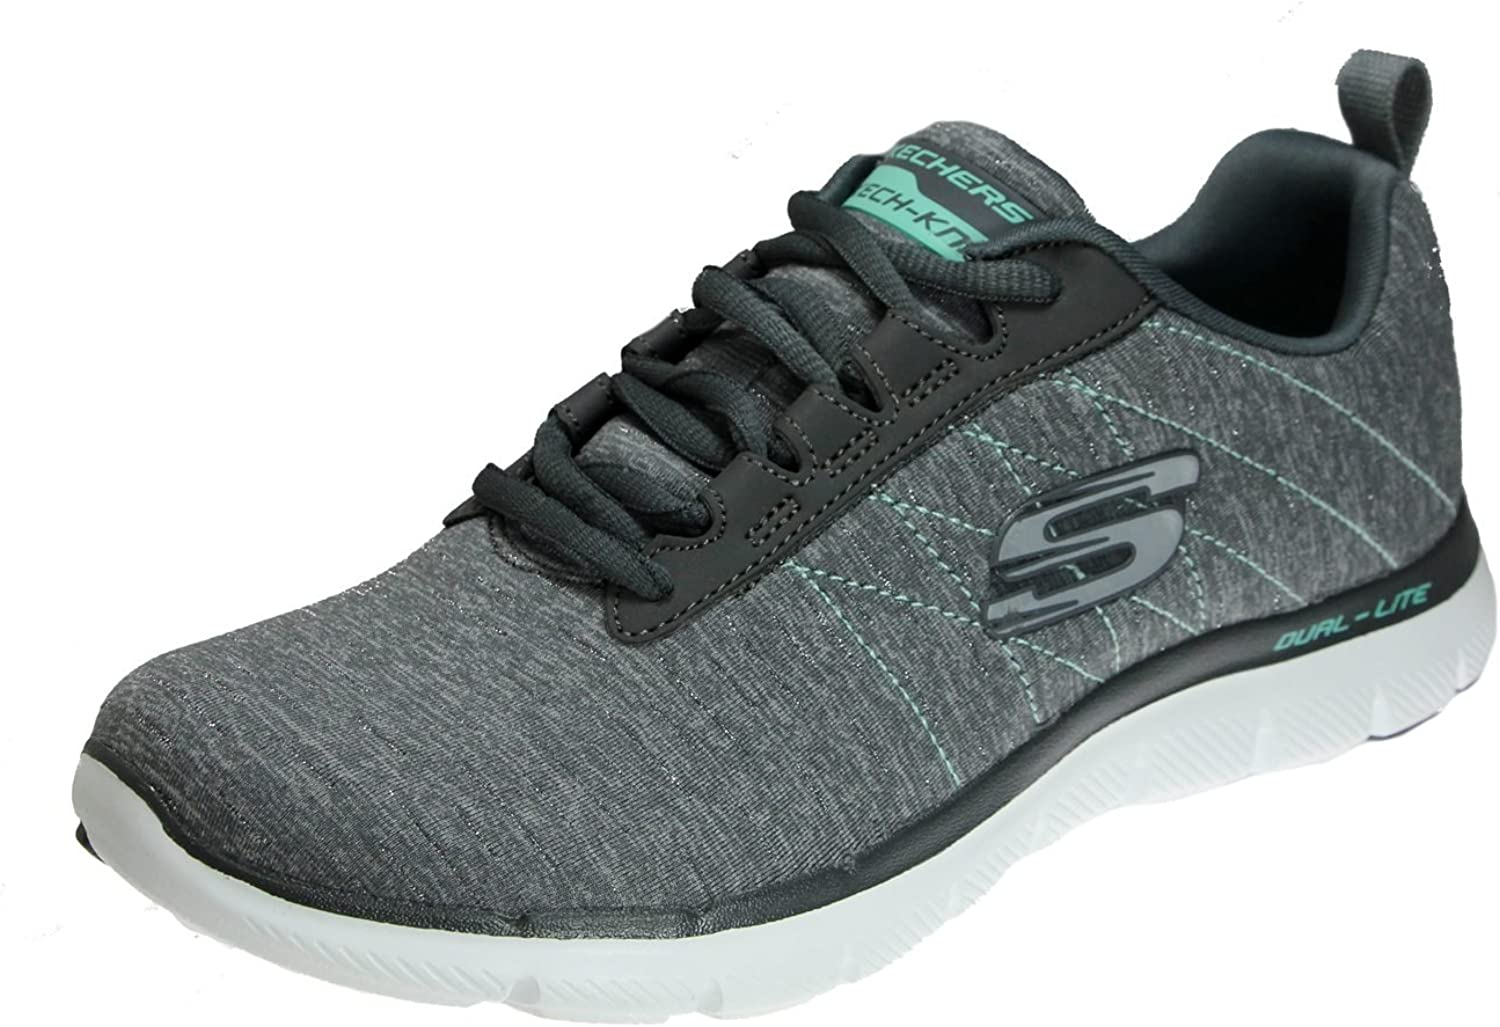 Skechers Women's Flex Appeal 2.0 shoes